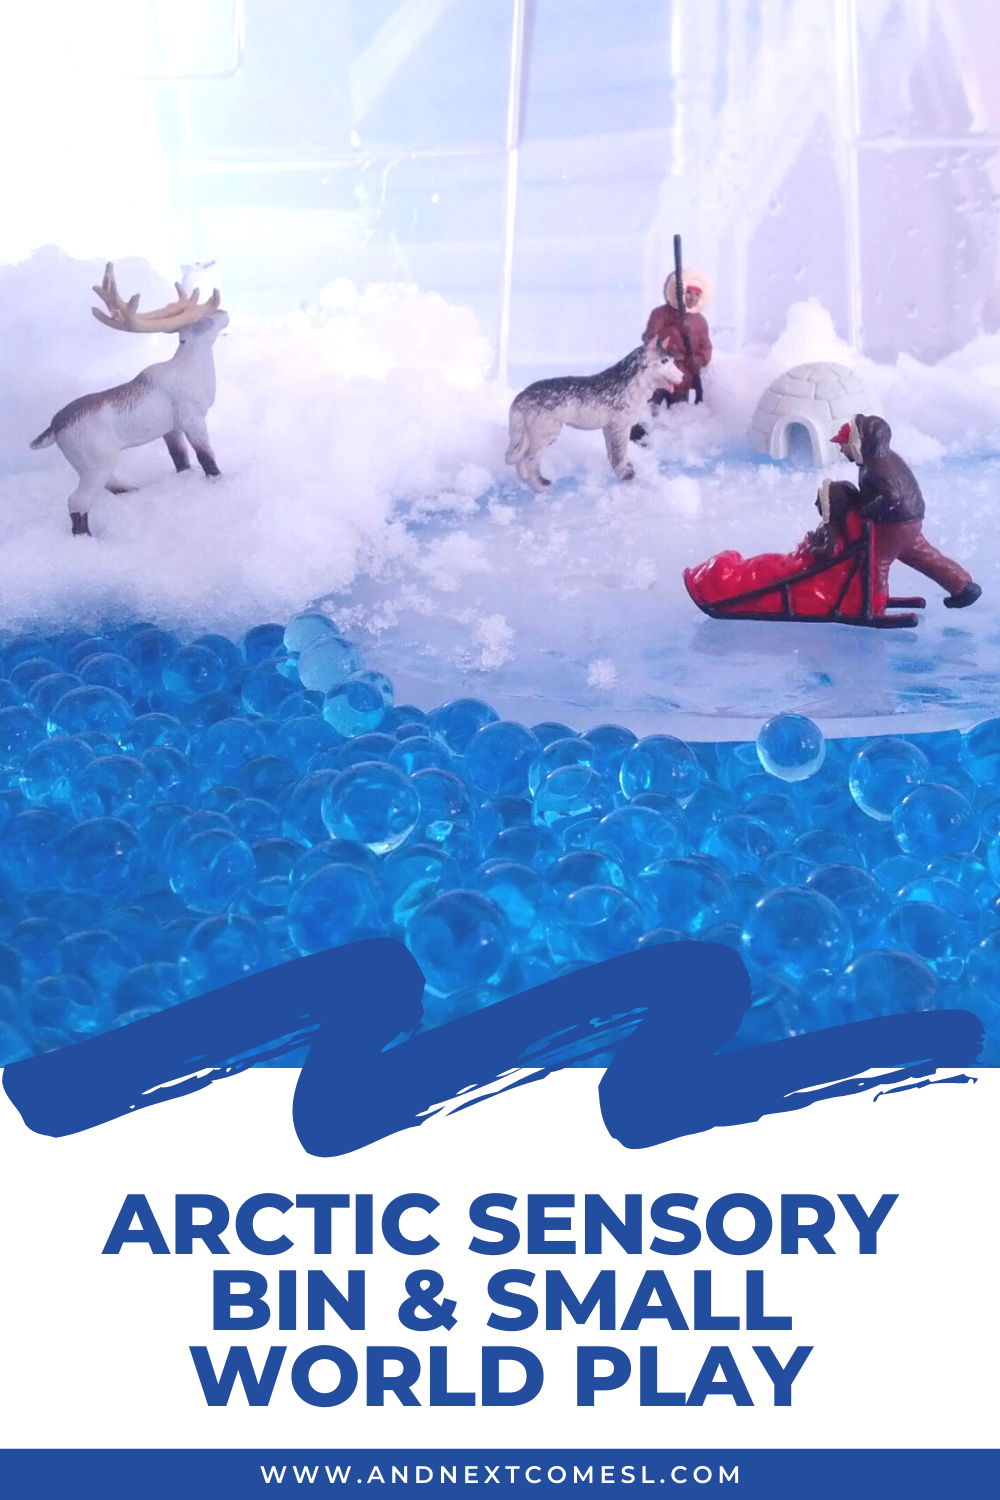 Arctic sensory bin and arctic animals small world - with water beads, snow, and ice